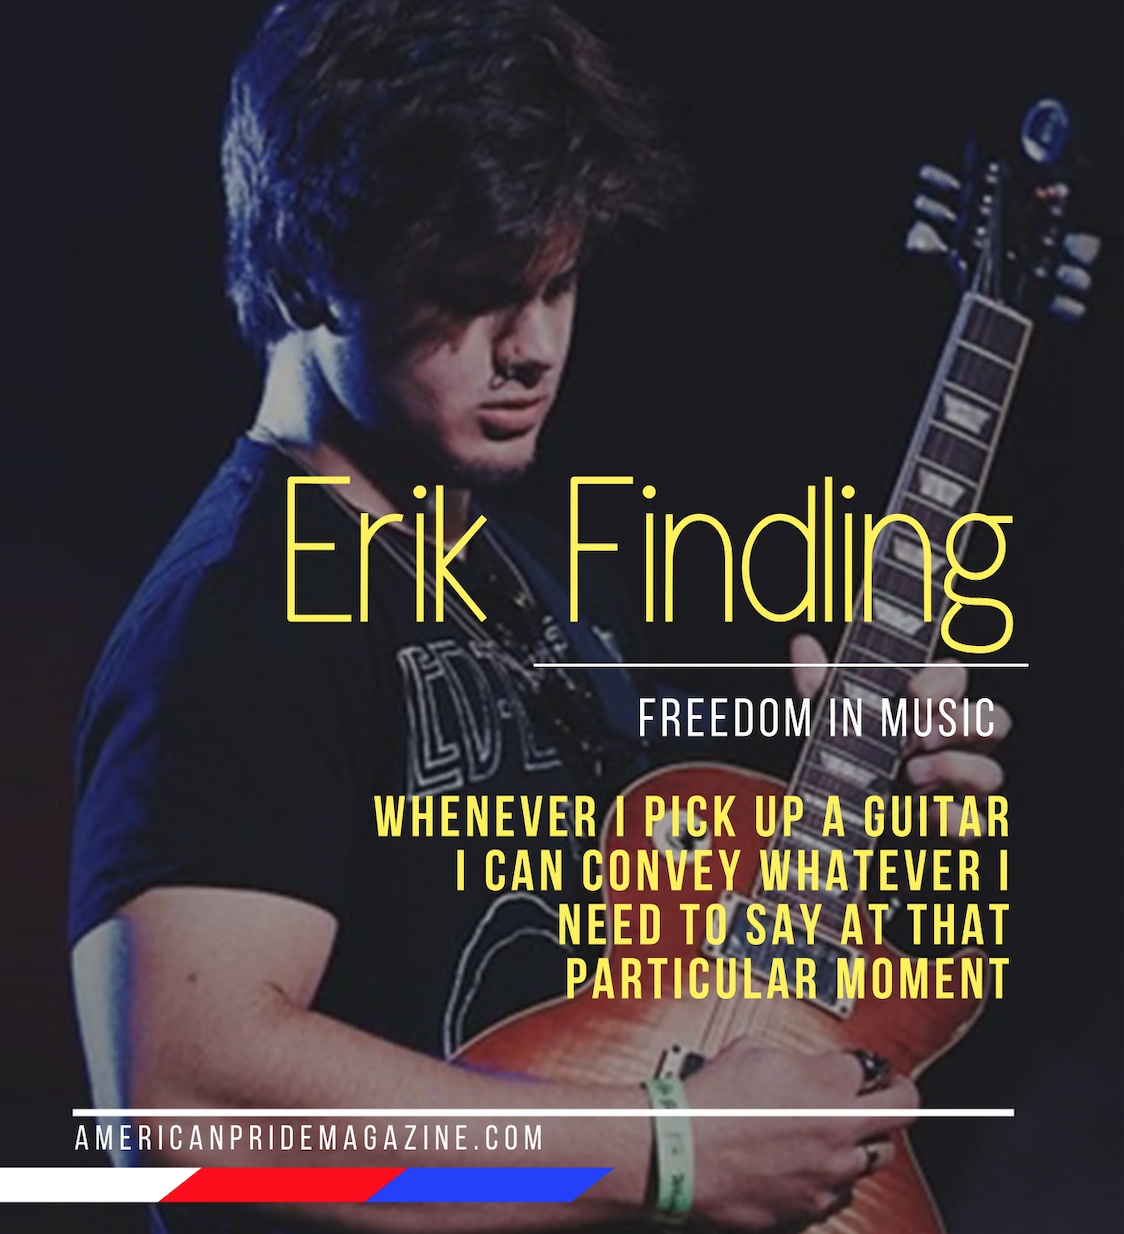 High Street's Erik Findling Talks about finding freedom in Music